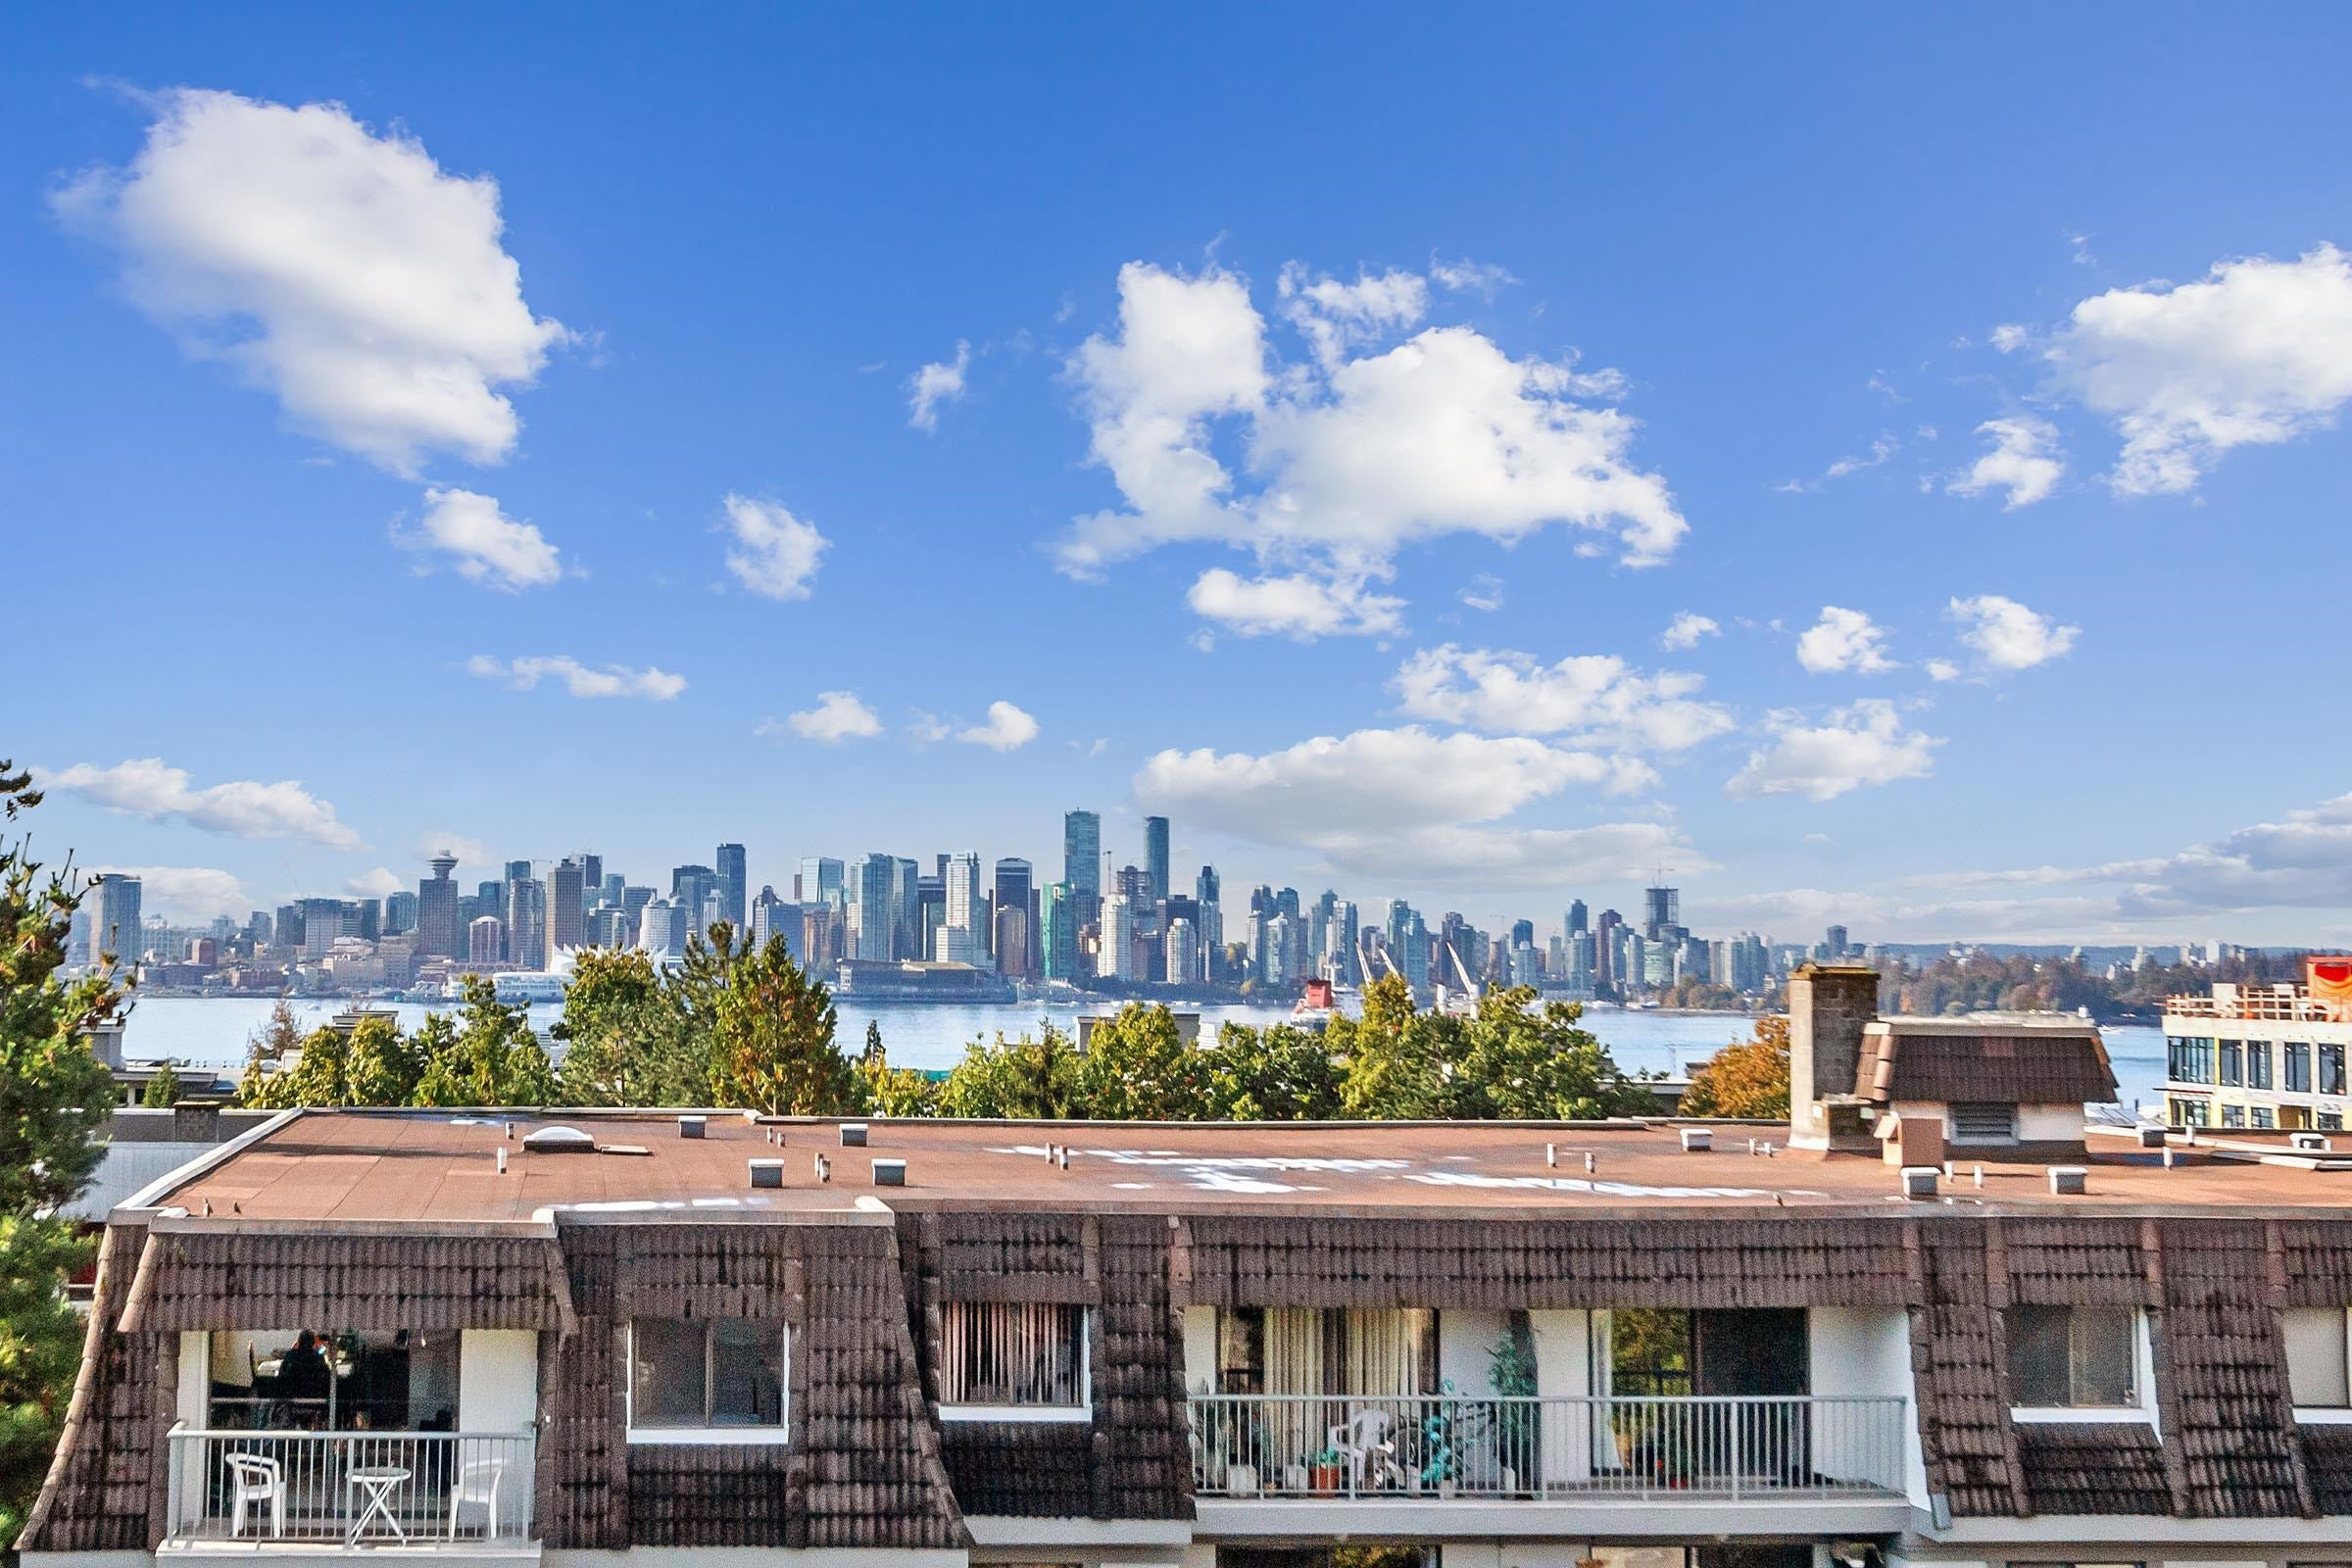 301 264 W 2ND STREET - Lower Lonsdale Apartment/Condo for sale, 2 Bedrooms (R2625527) - #1